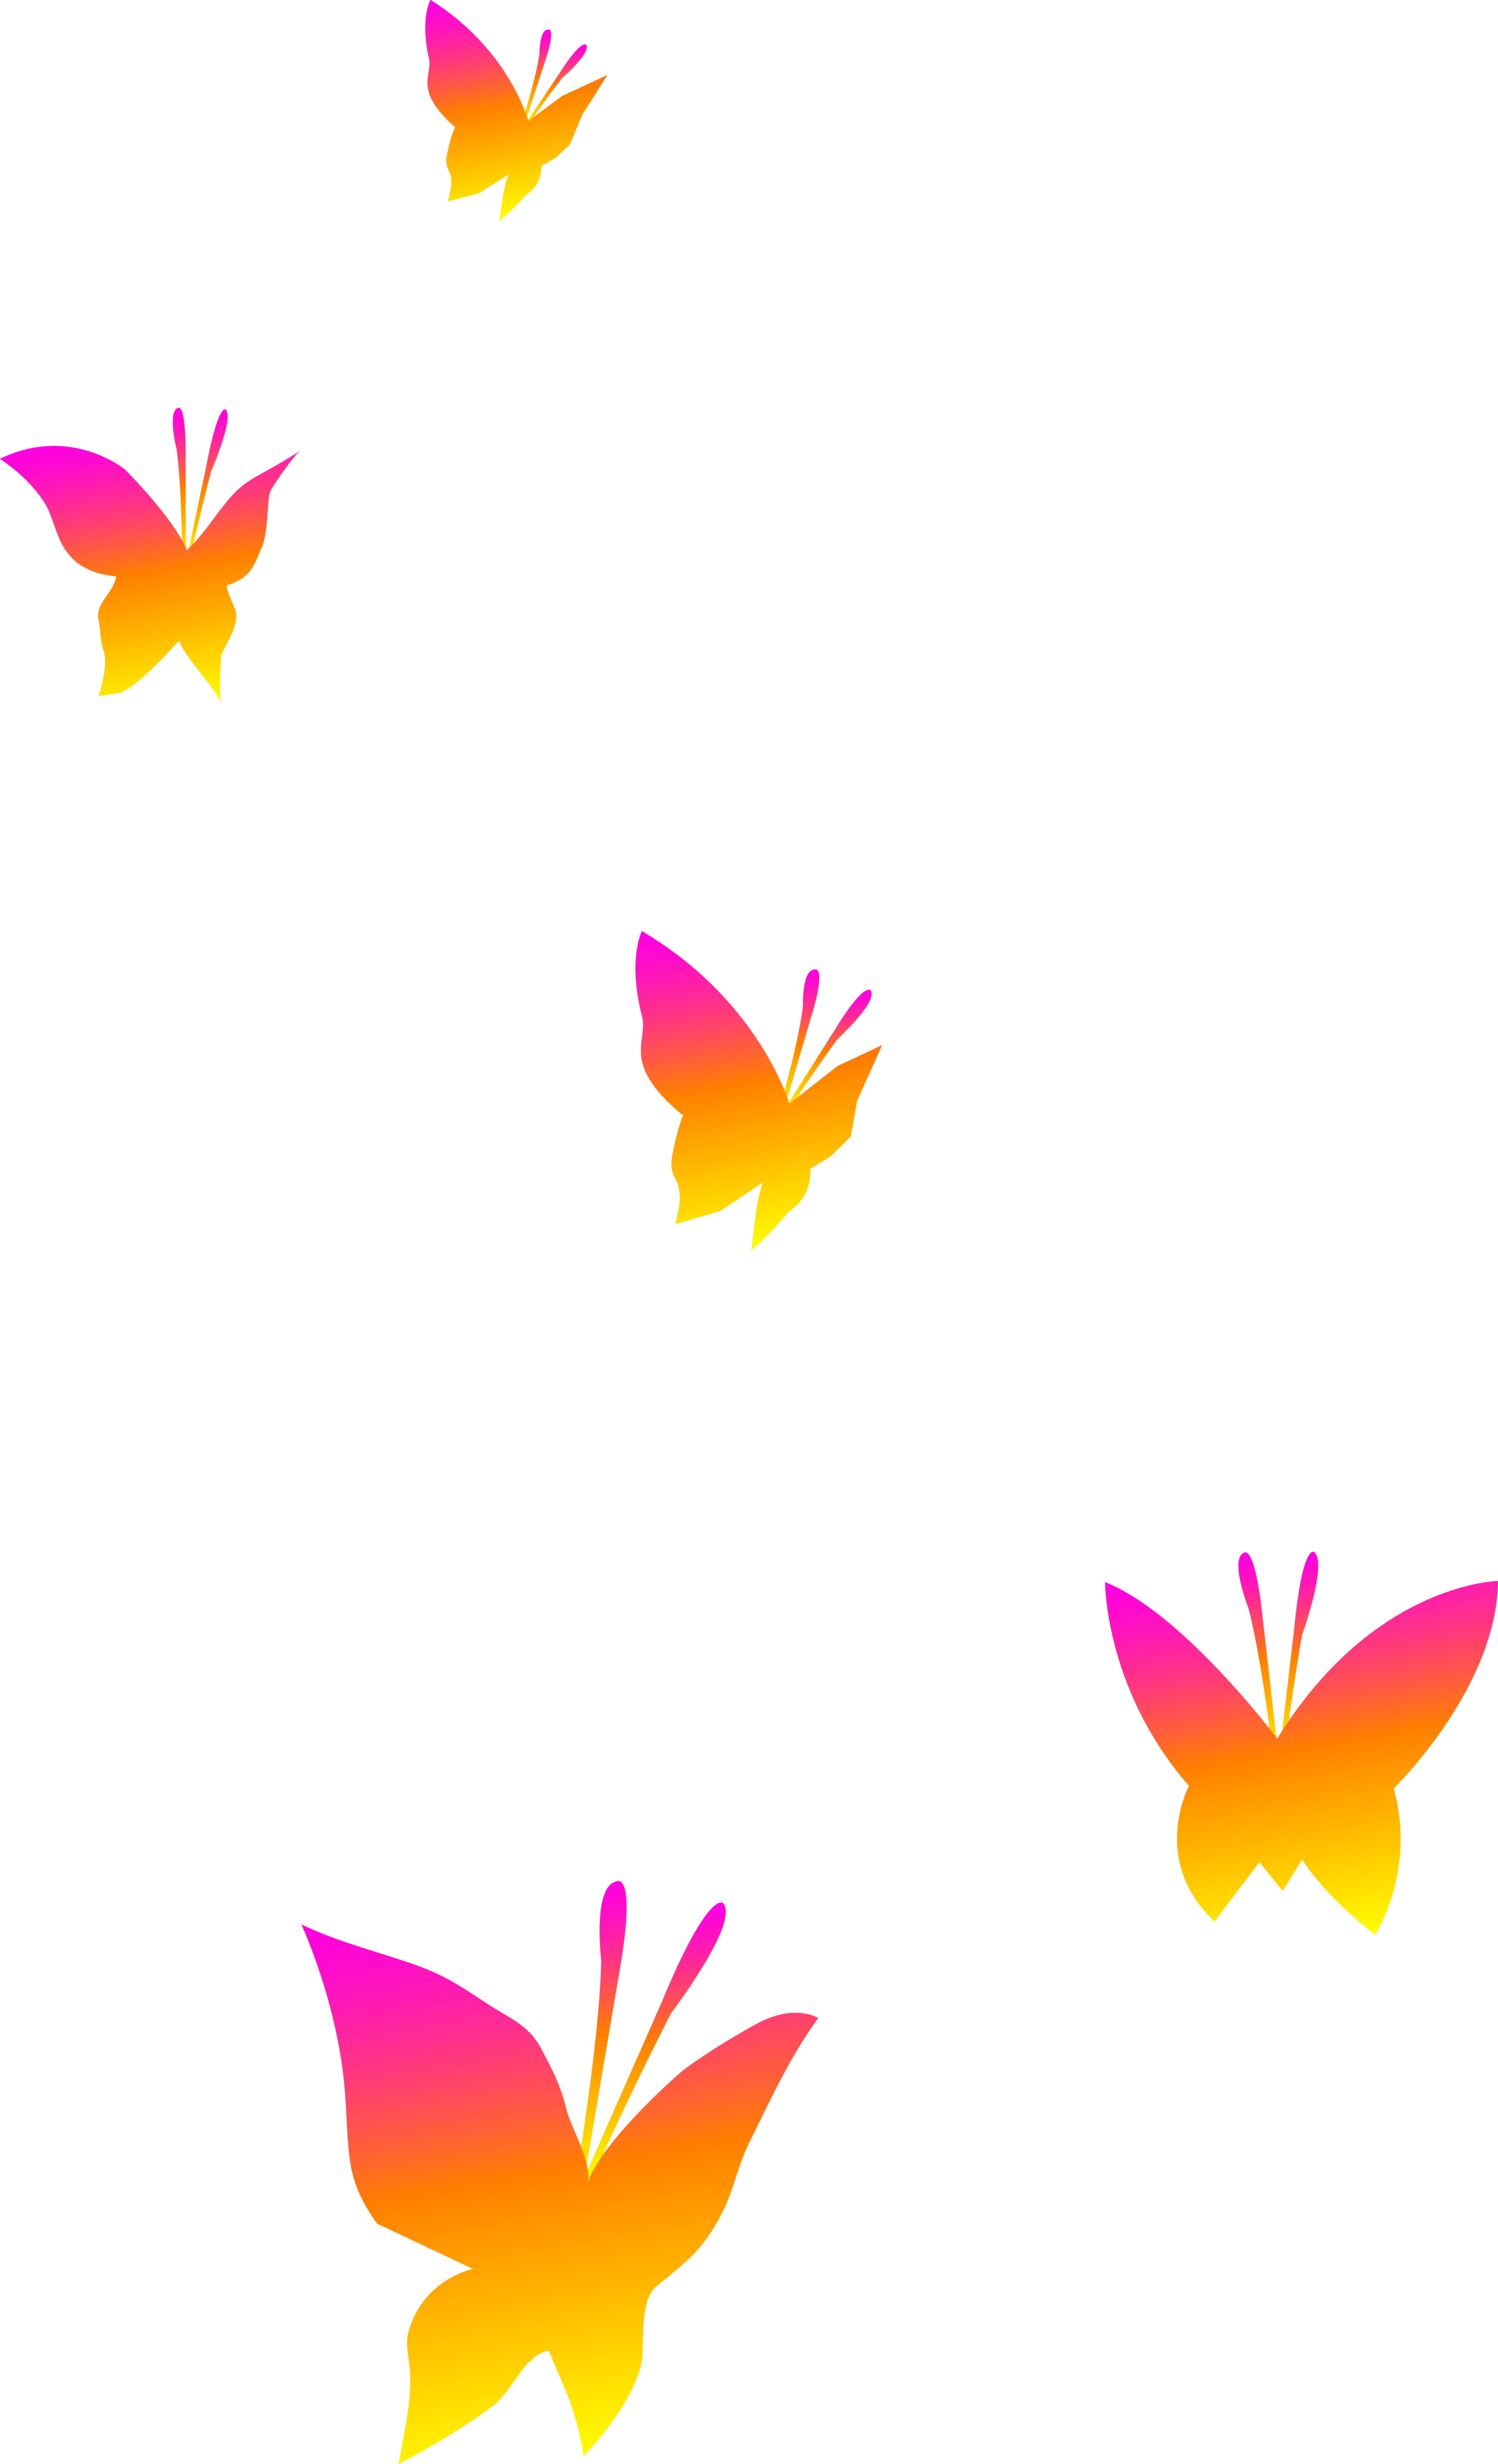 Free Butterfly Background Images, Download Free Clip Art.